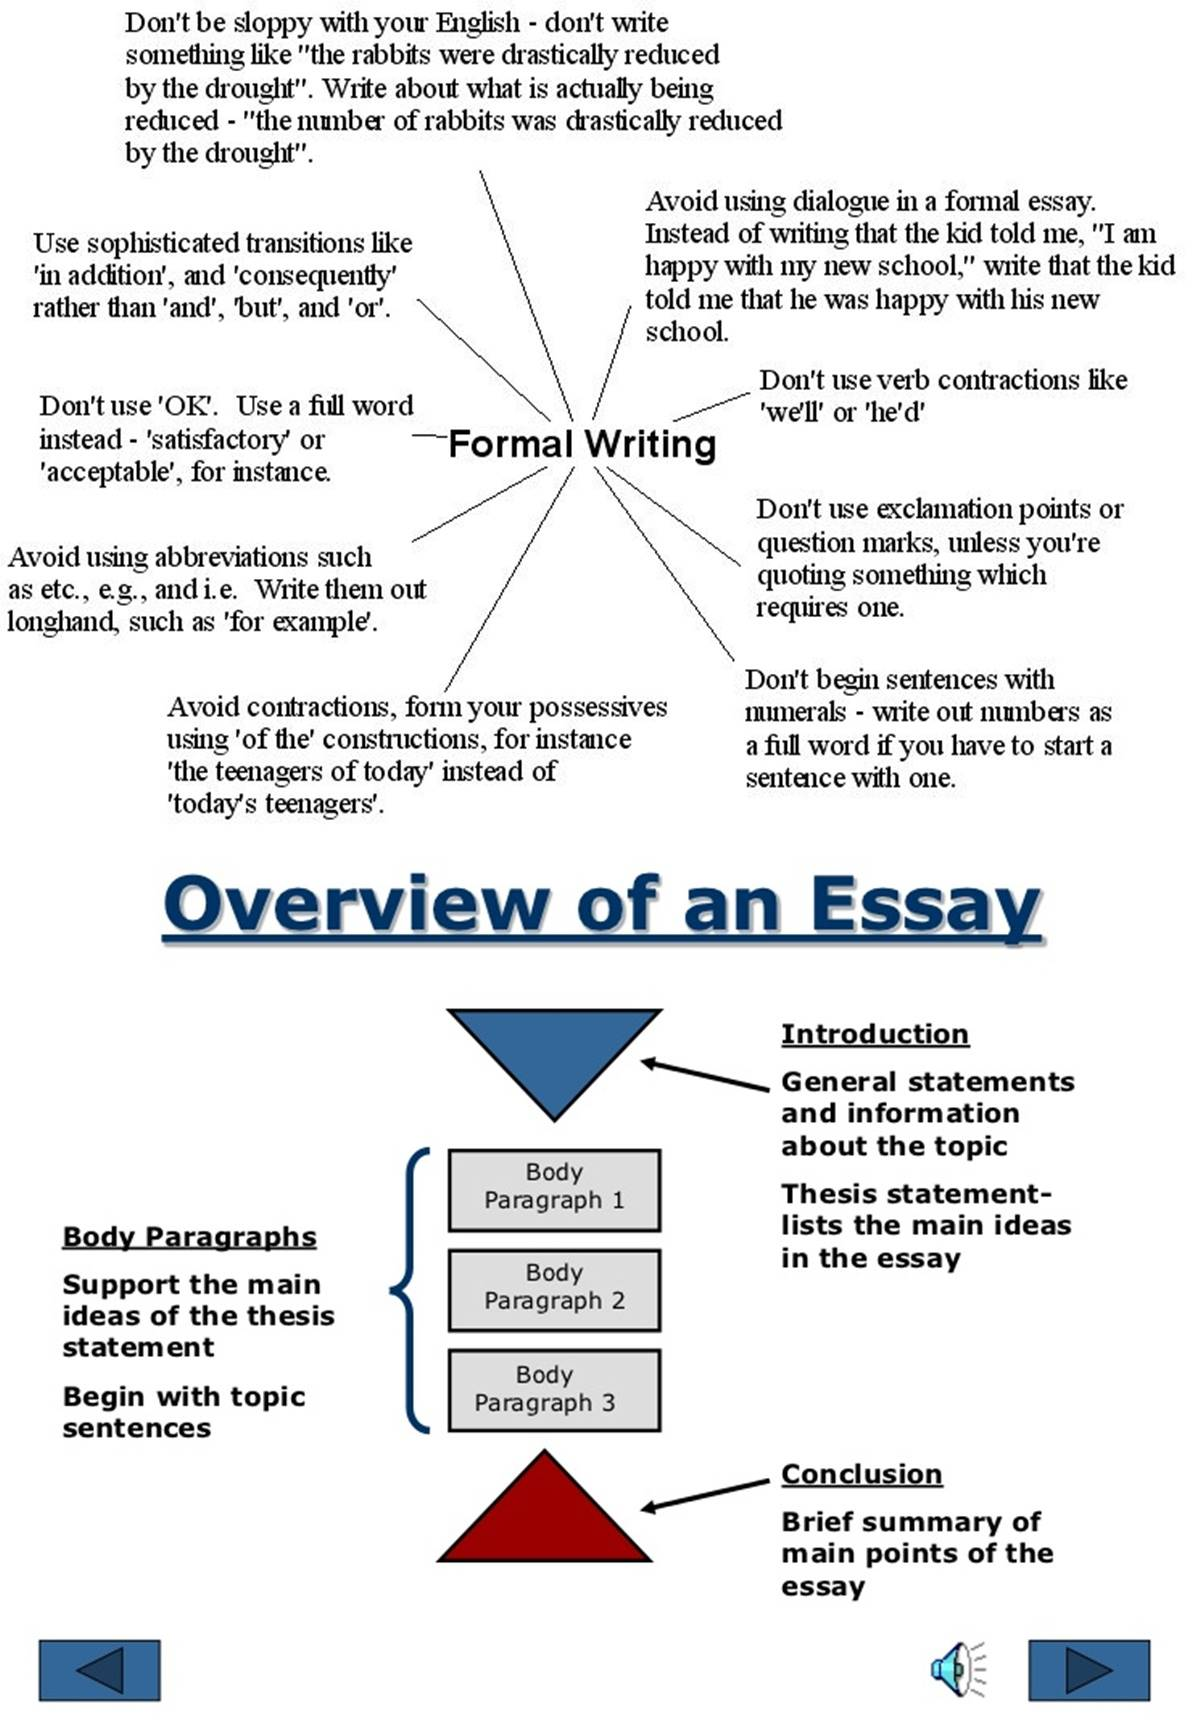 https://www.englishlearnsite.com/wp-content/uploads/2017/07/Formal-Writing-Tips.jpg